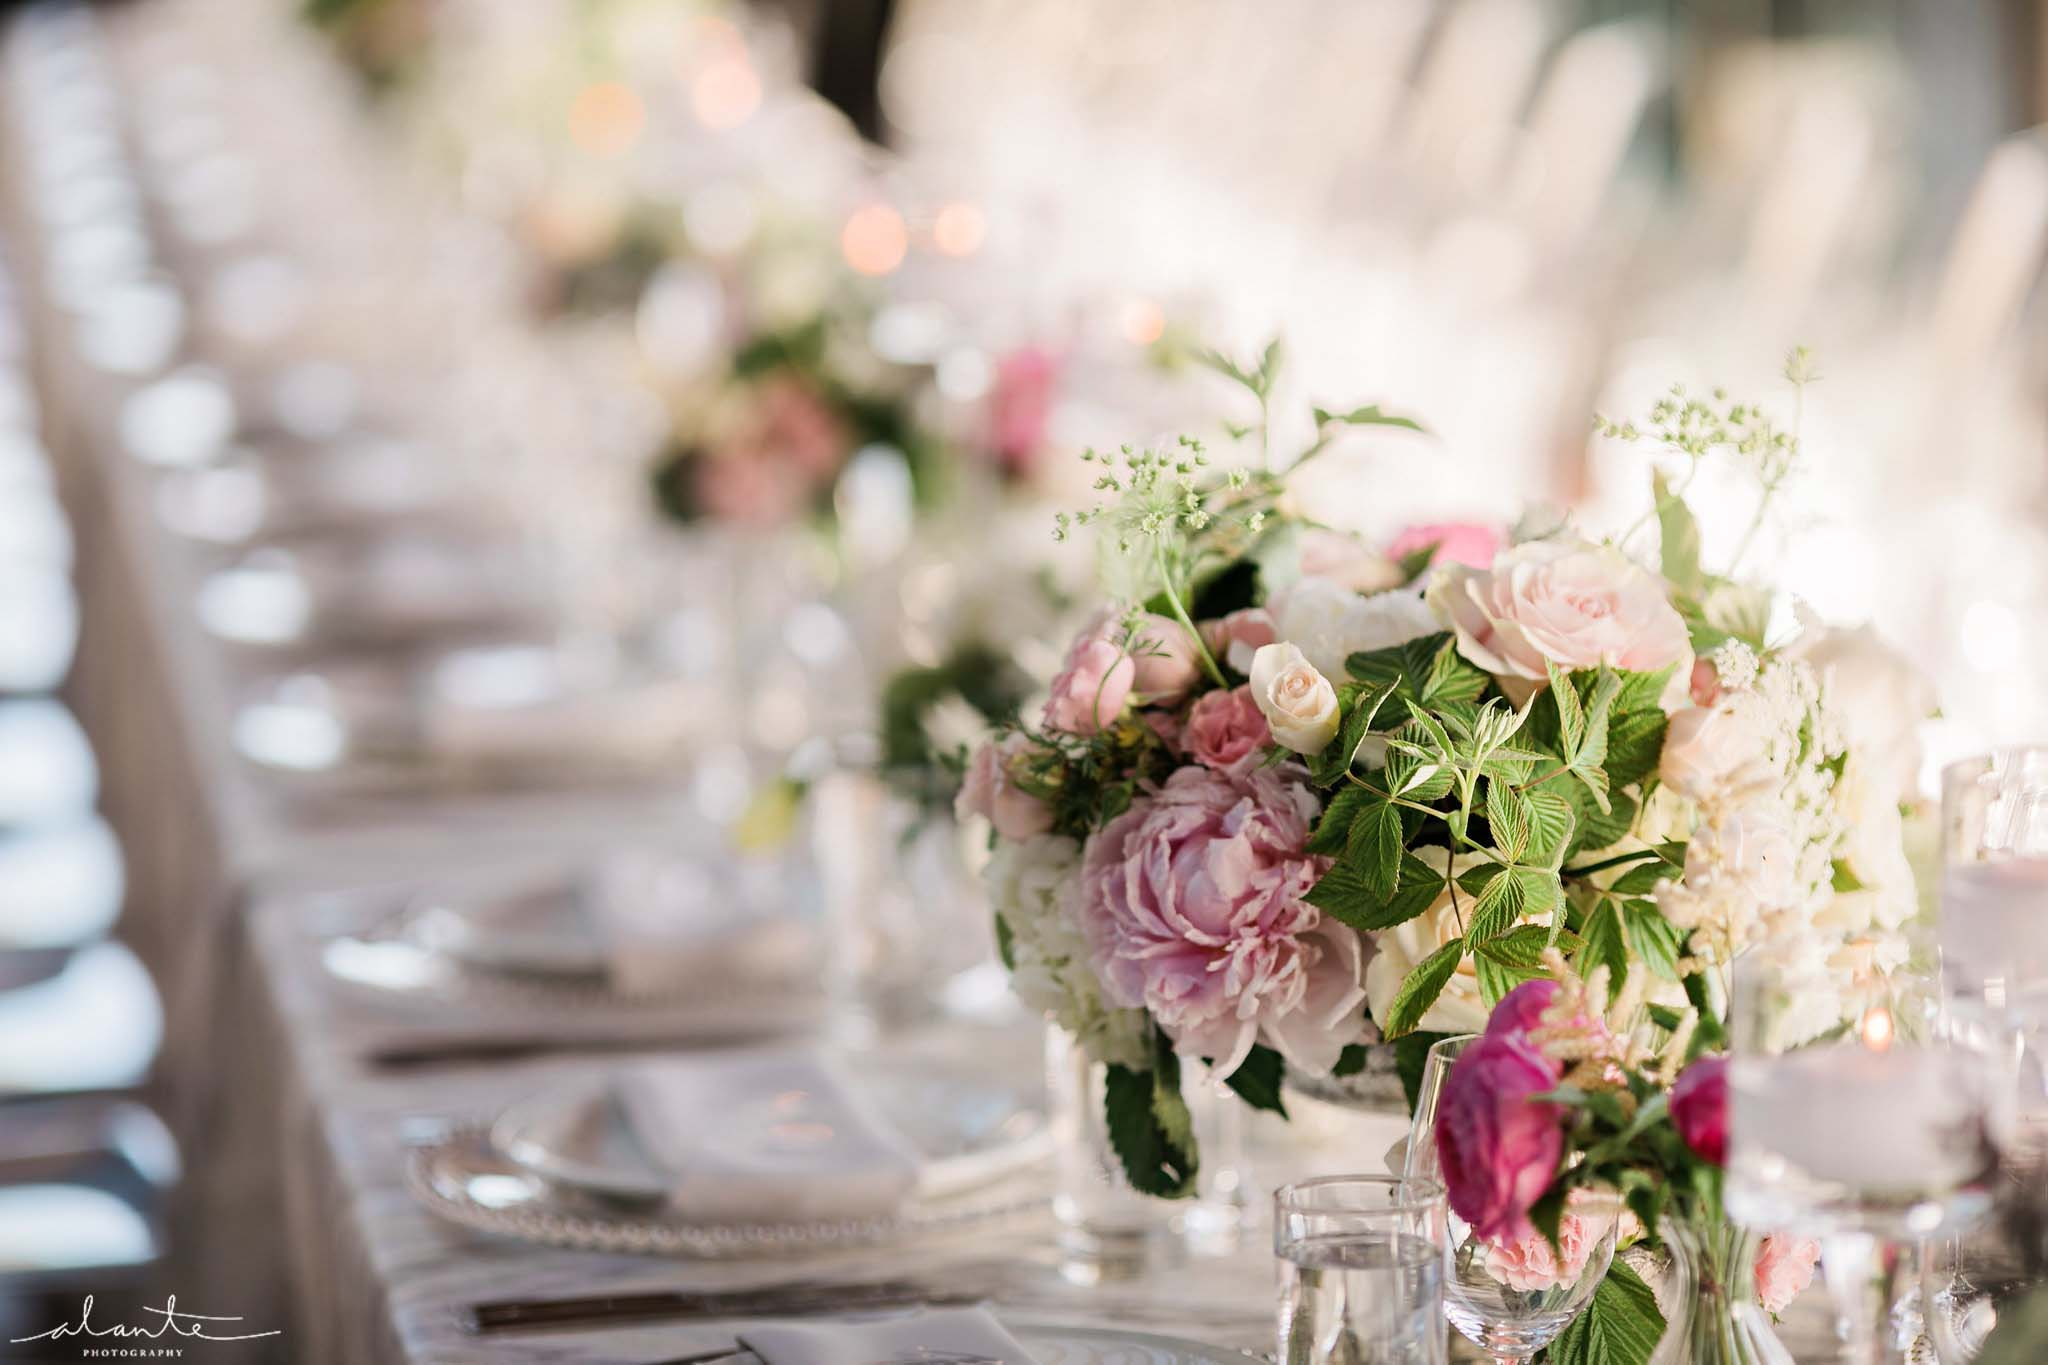 Peony centerpieces lining lobg table at wedding reception - Olympic Rooftop Pavilion wedding with pink peonies by Flora Nova Design Seattle